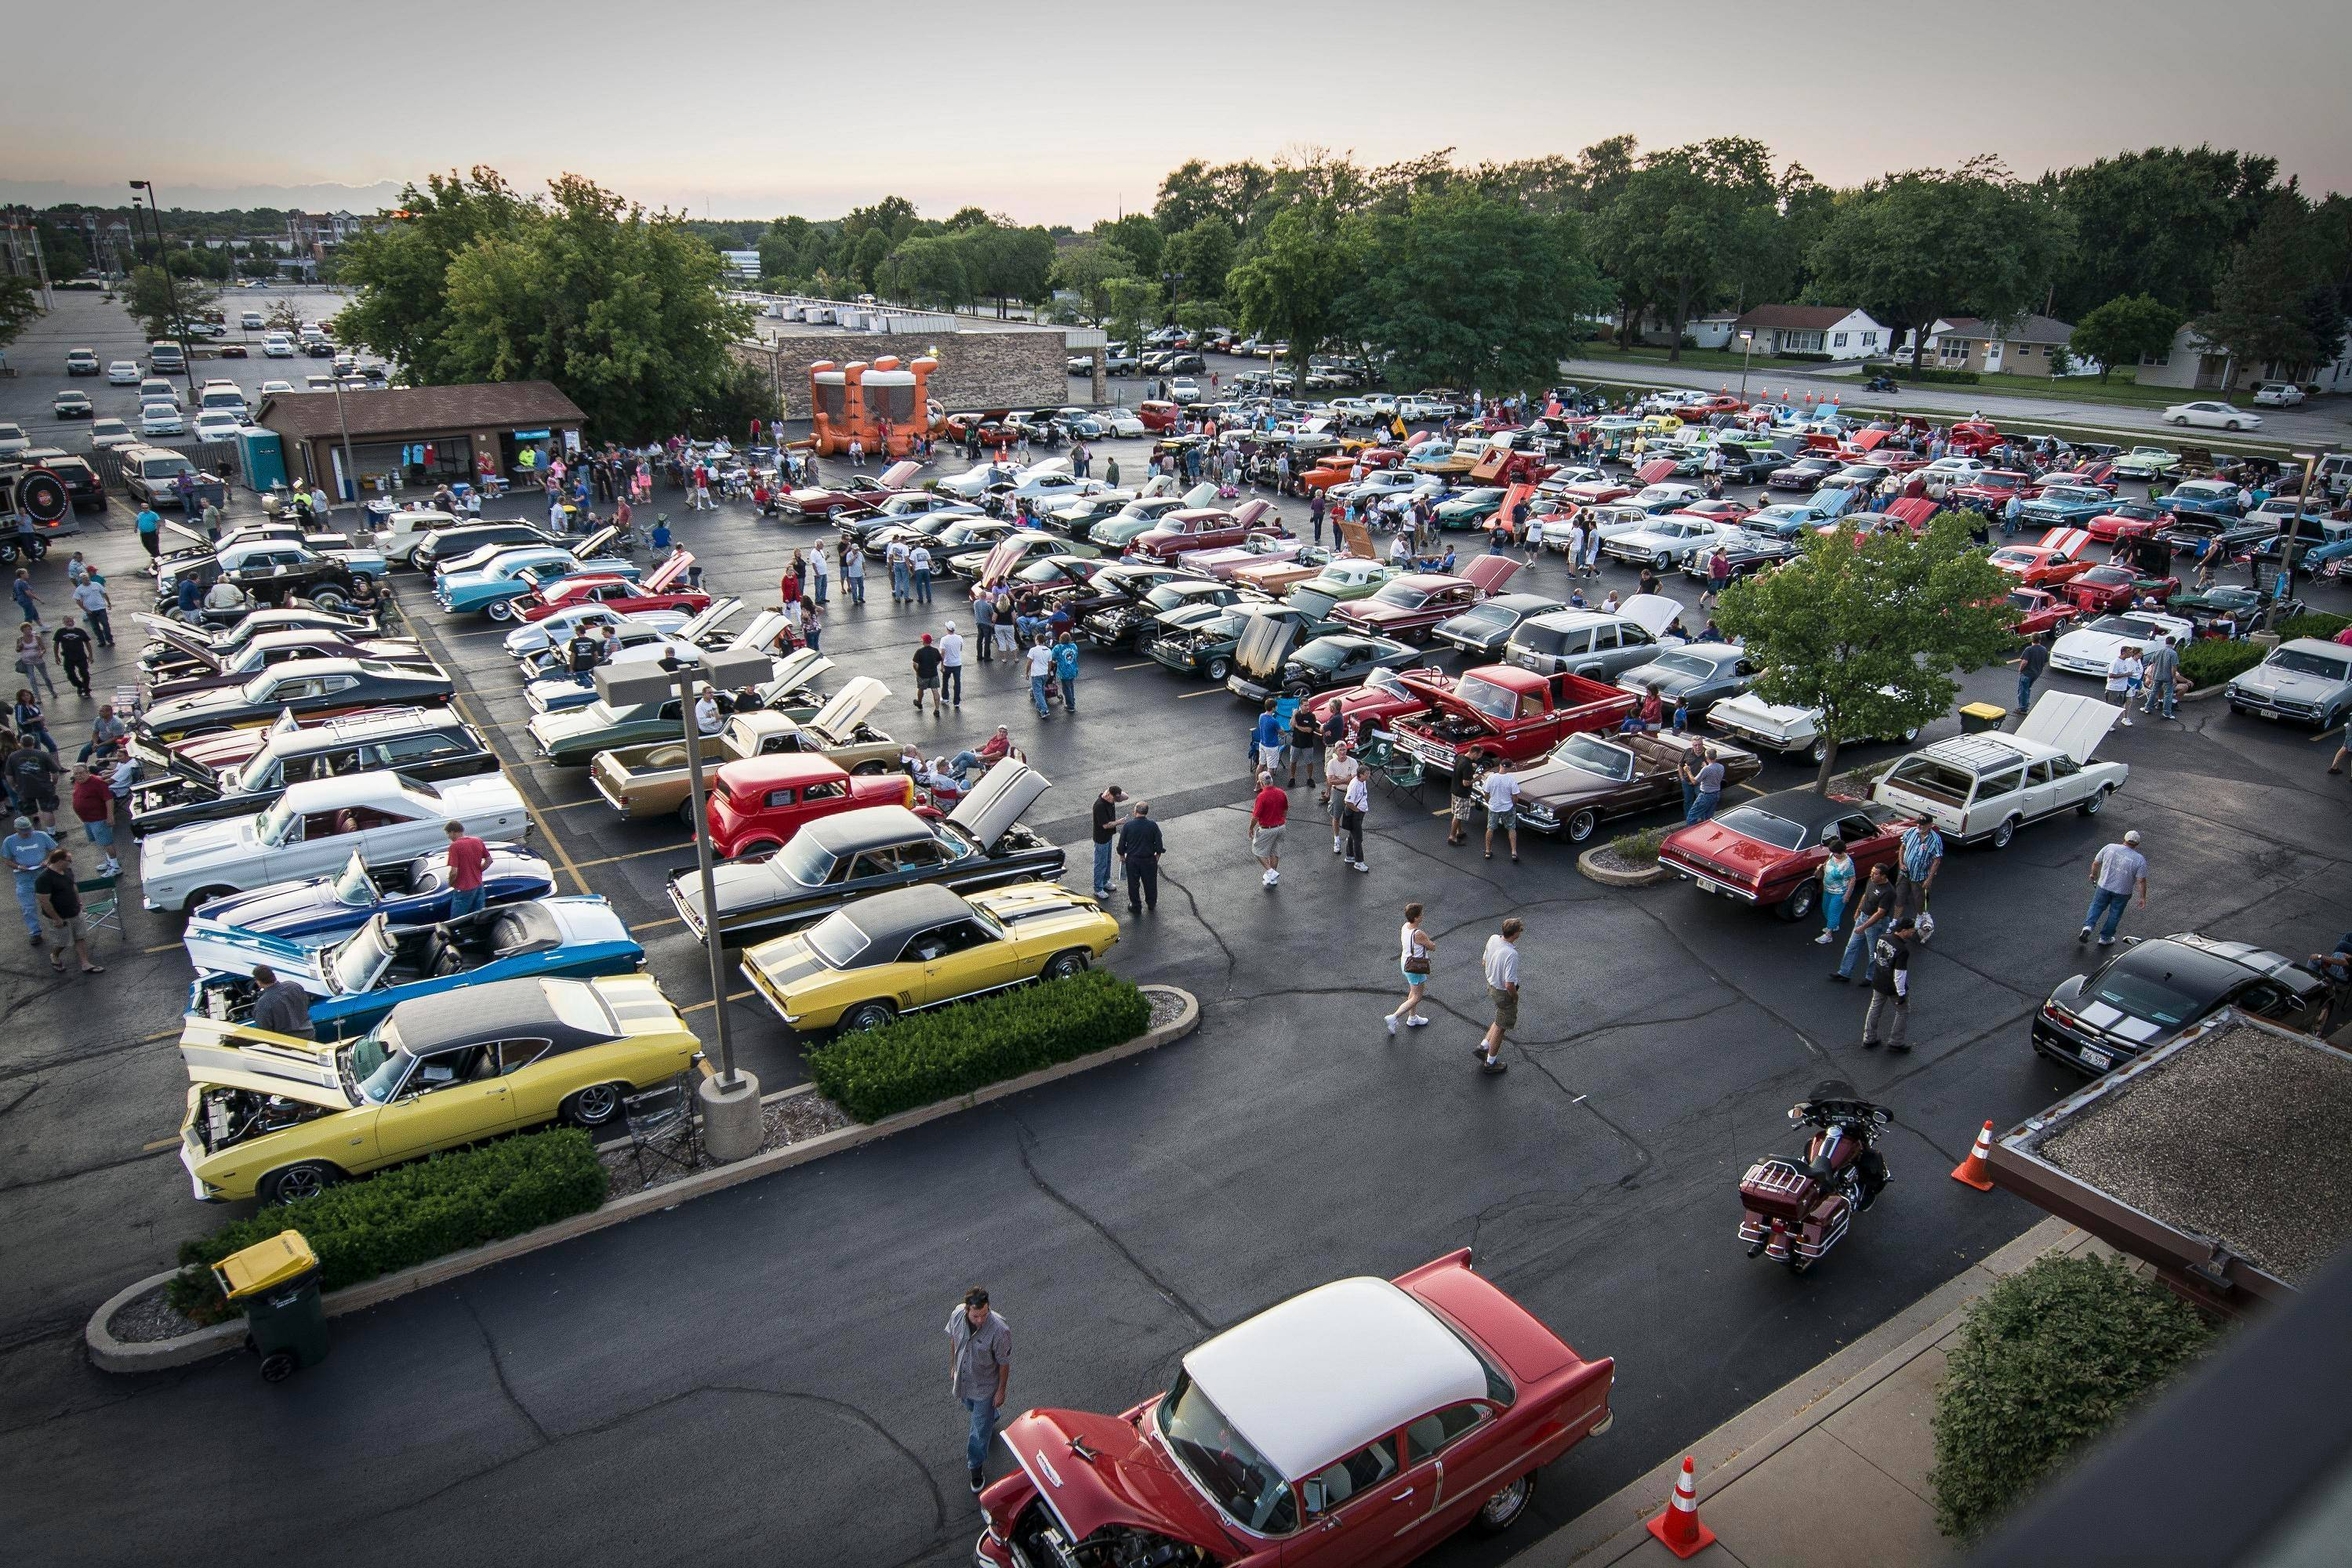 More than 200 cars showed up last year for the first Rolling Meadows cruise night at Meadows Christian Fellowship Church on Kirchoff Road.